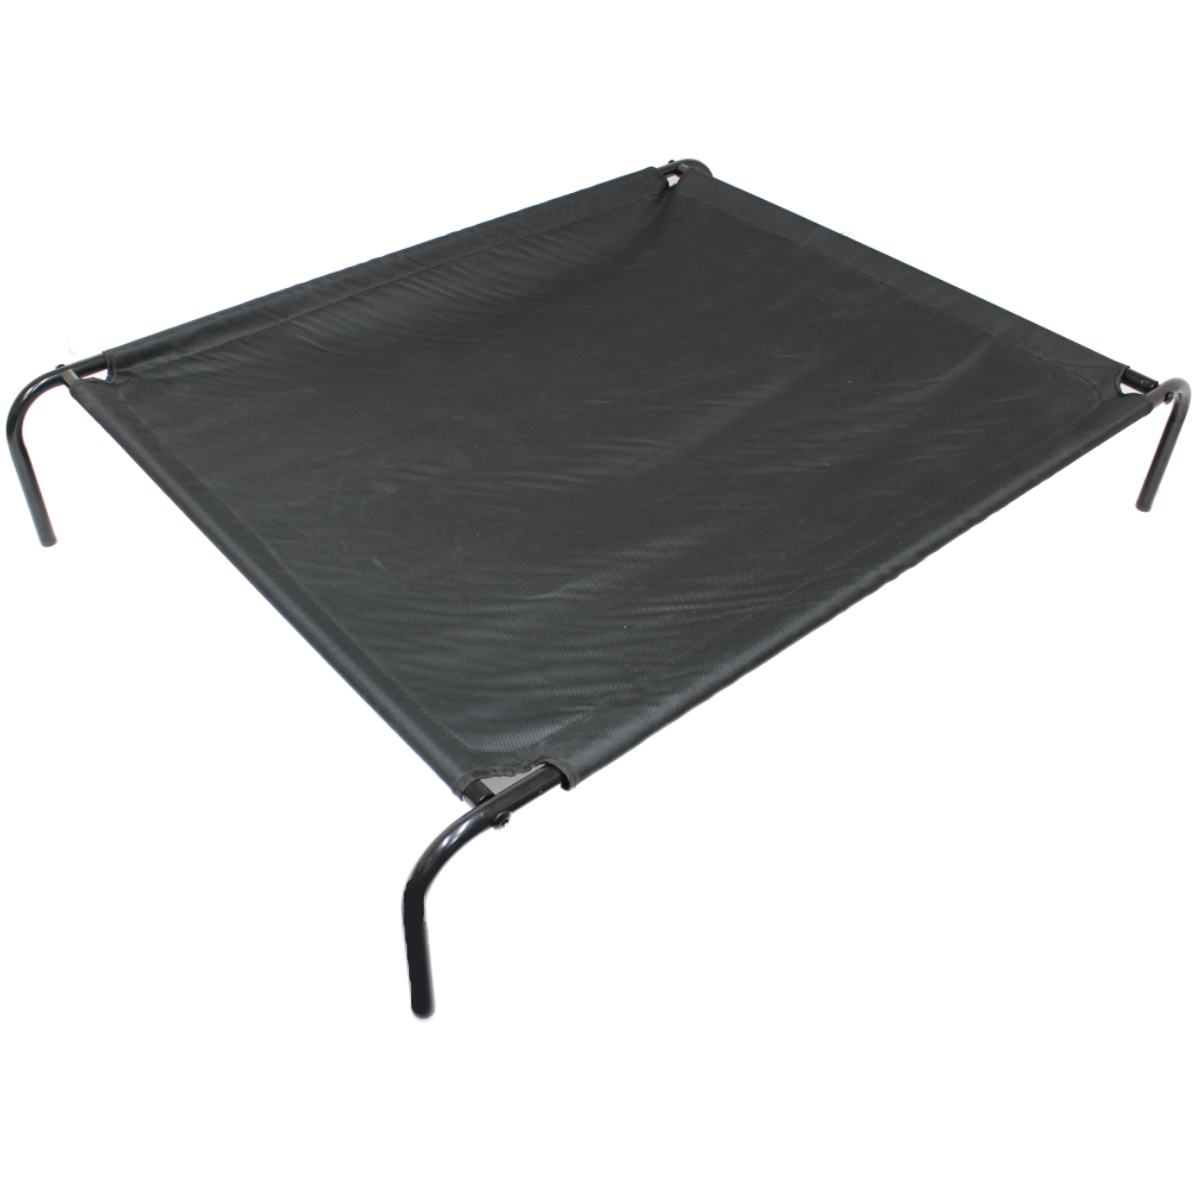 ME & MY LARGE RAISED DOG BED OUTDOOR/INDOOR CUSHION/PILLOW COOL/WATERPROOF XL Enlarged Preview